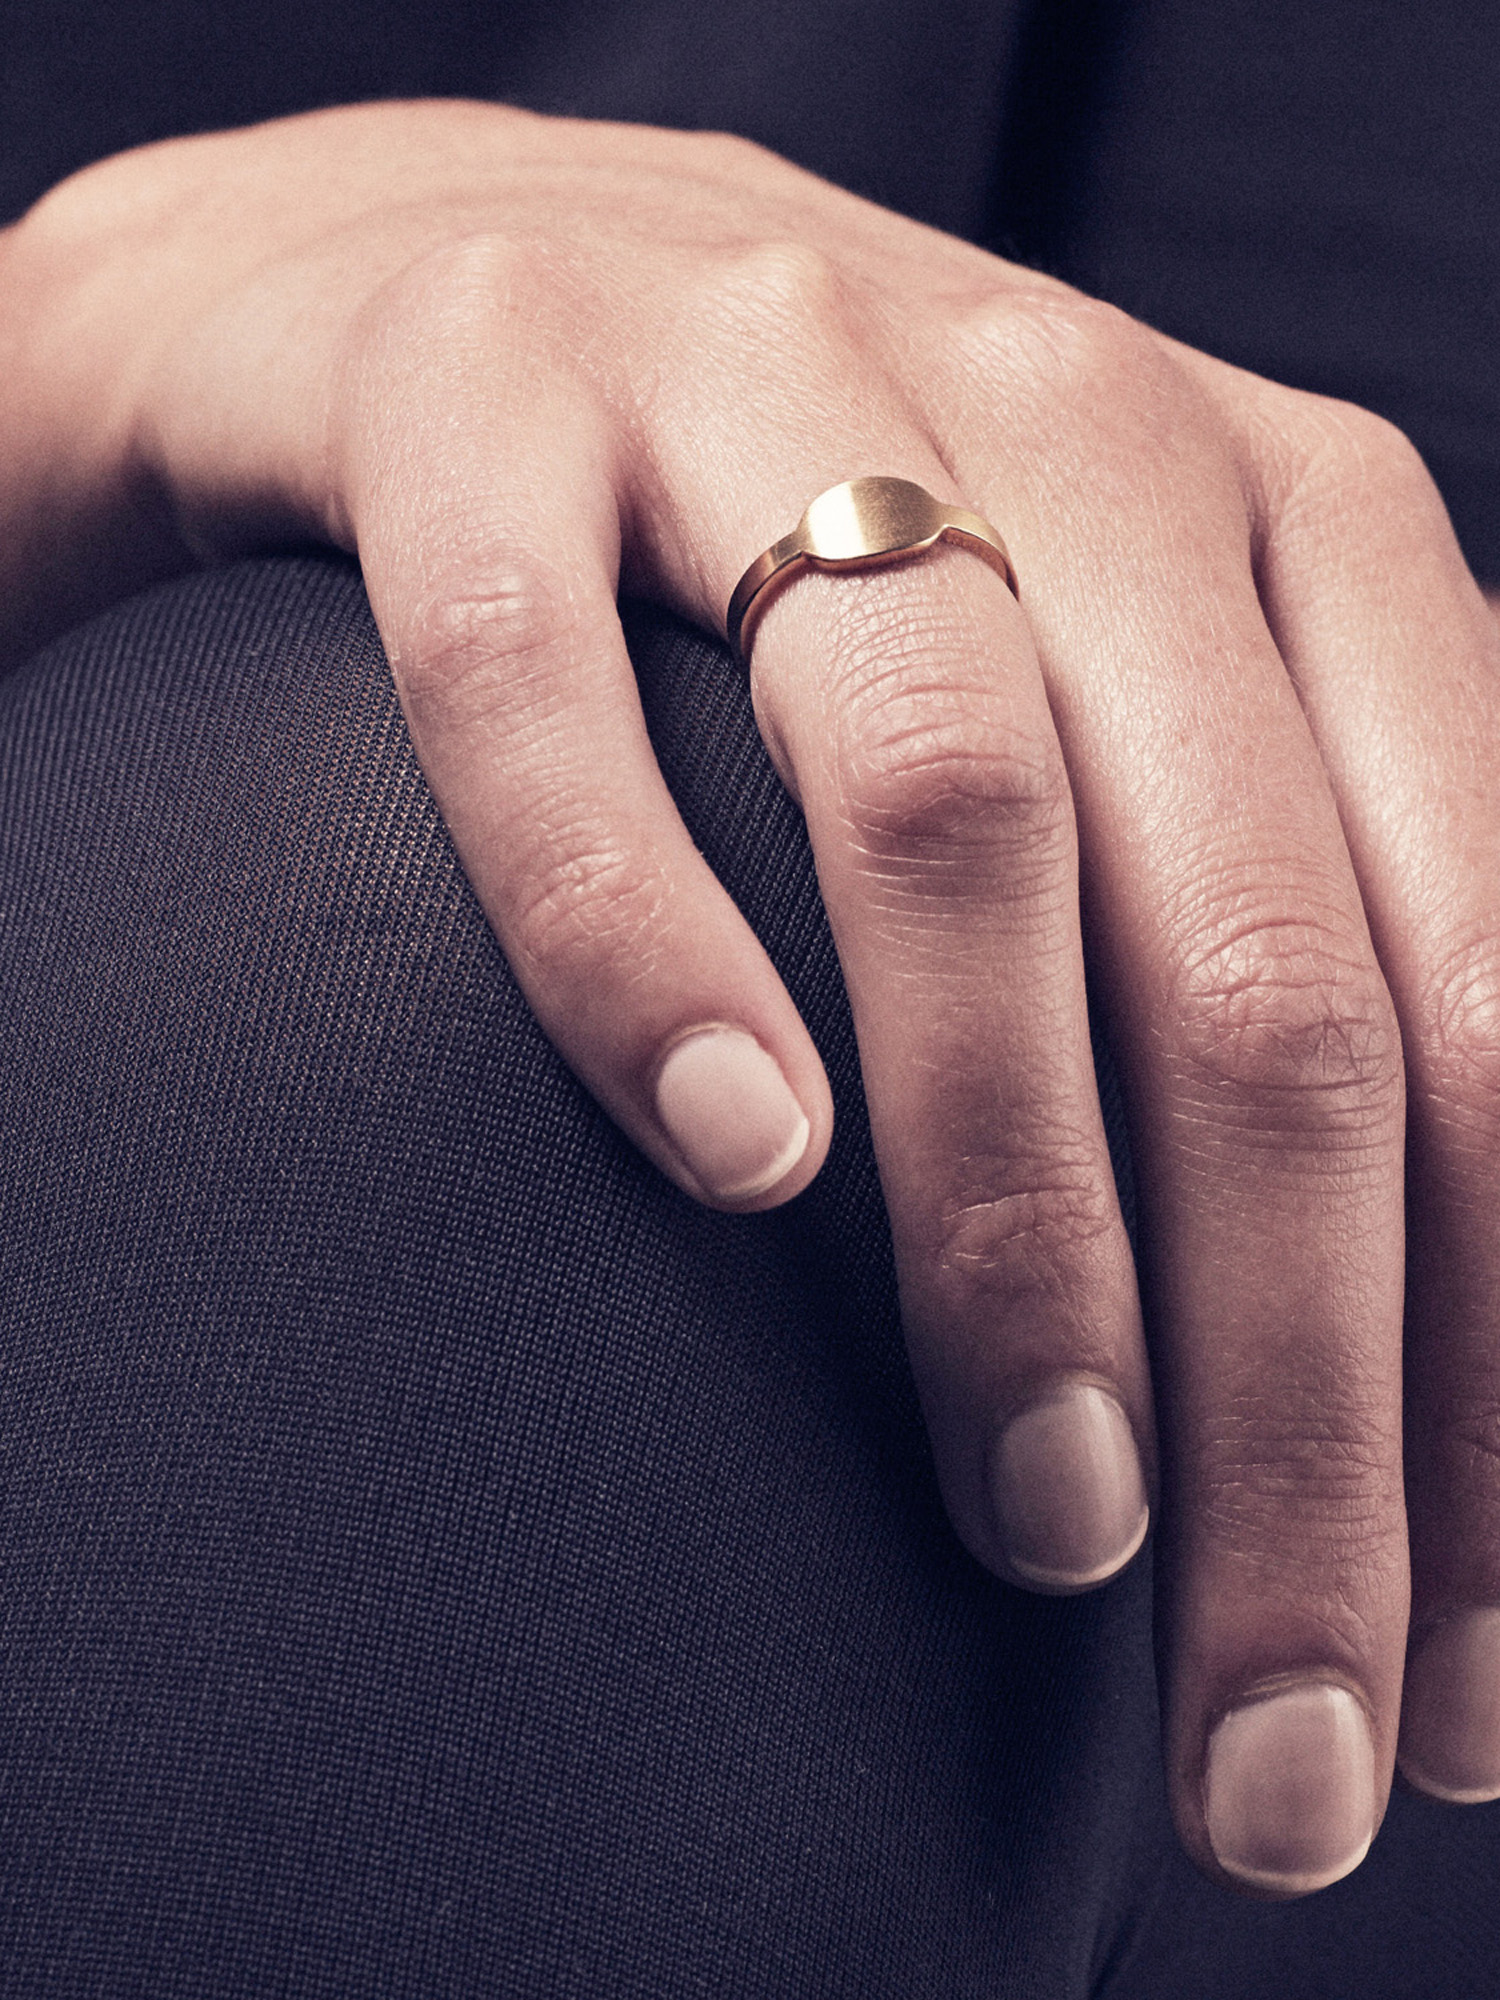 Siegelring Anda, queroval klein in vergoldetem Silber  Signet ring Anda, horizontal oval small in goldplated silver